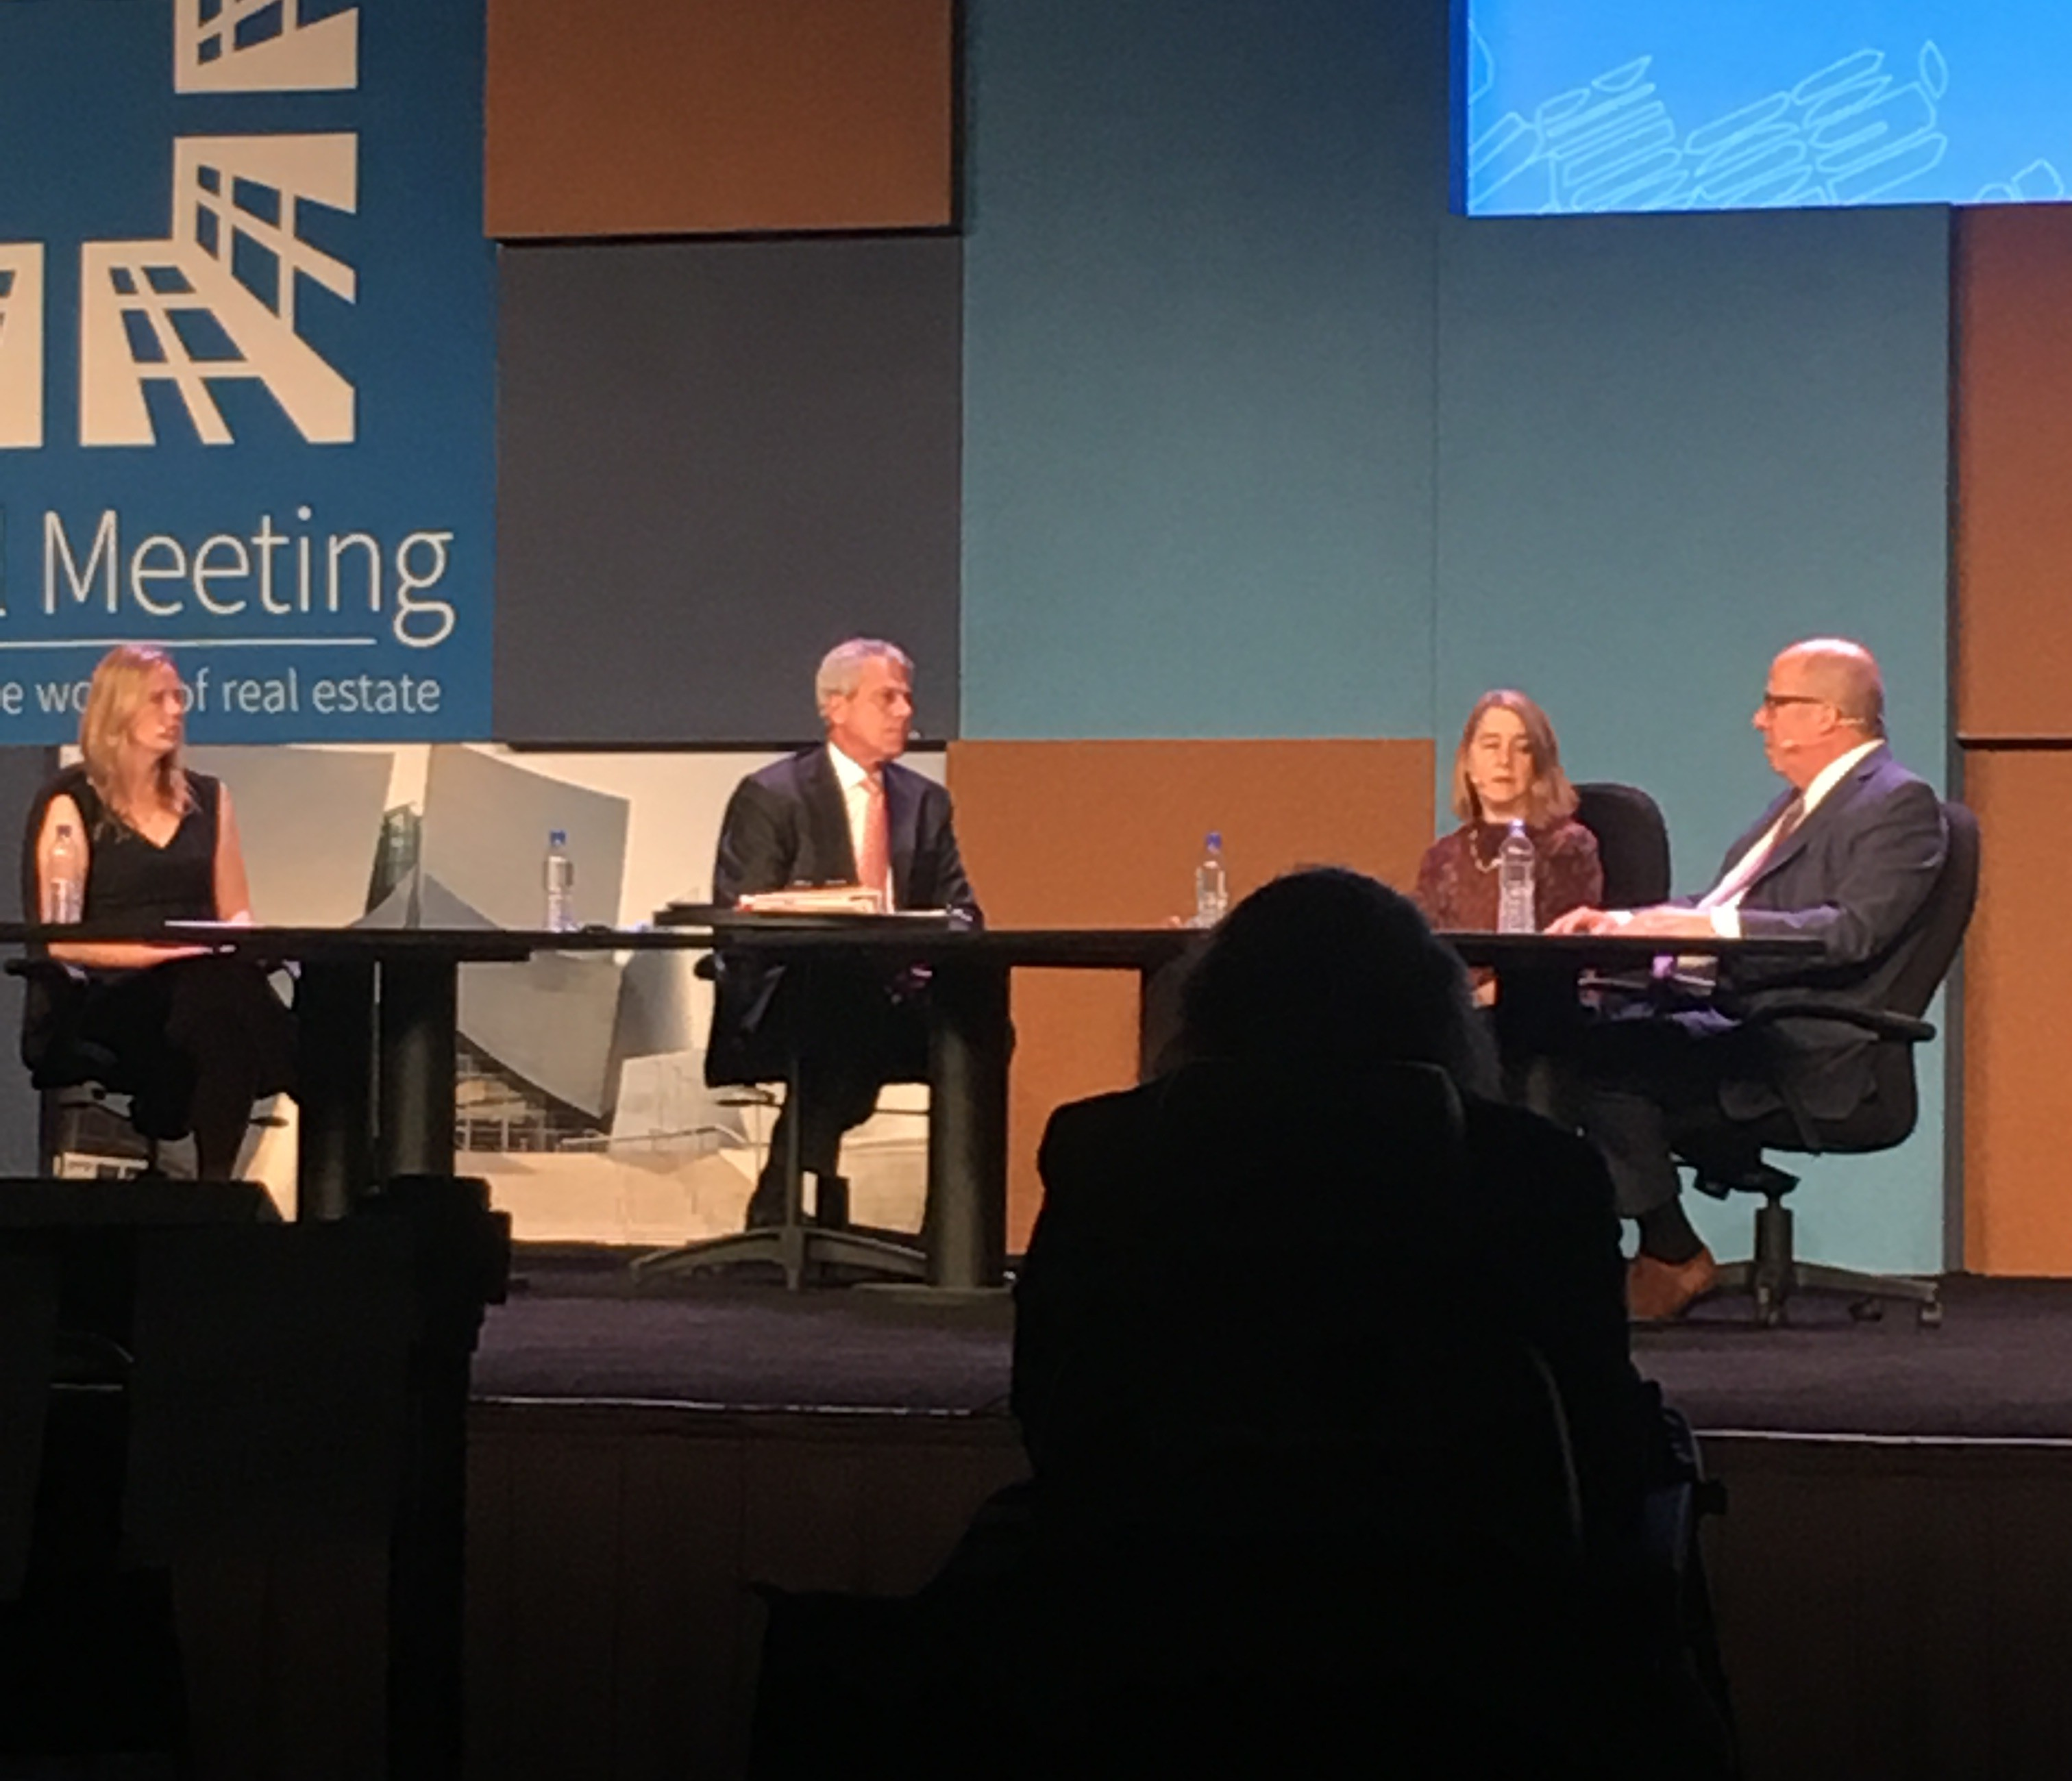 Emerging Trends in Real Estate panel: Kate Bicknell, Forest City; Mitch Roschelle, PwC; Mary Ludgin, Heitman; and Christopher Ward, AECOM